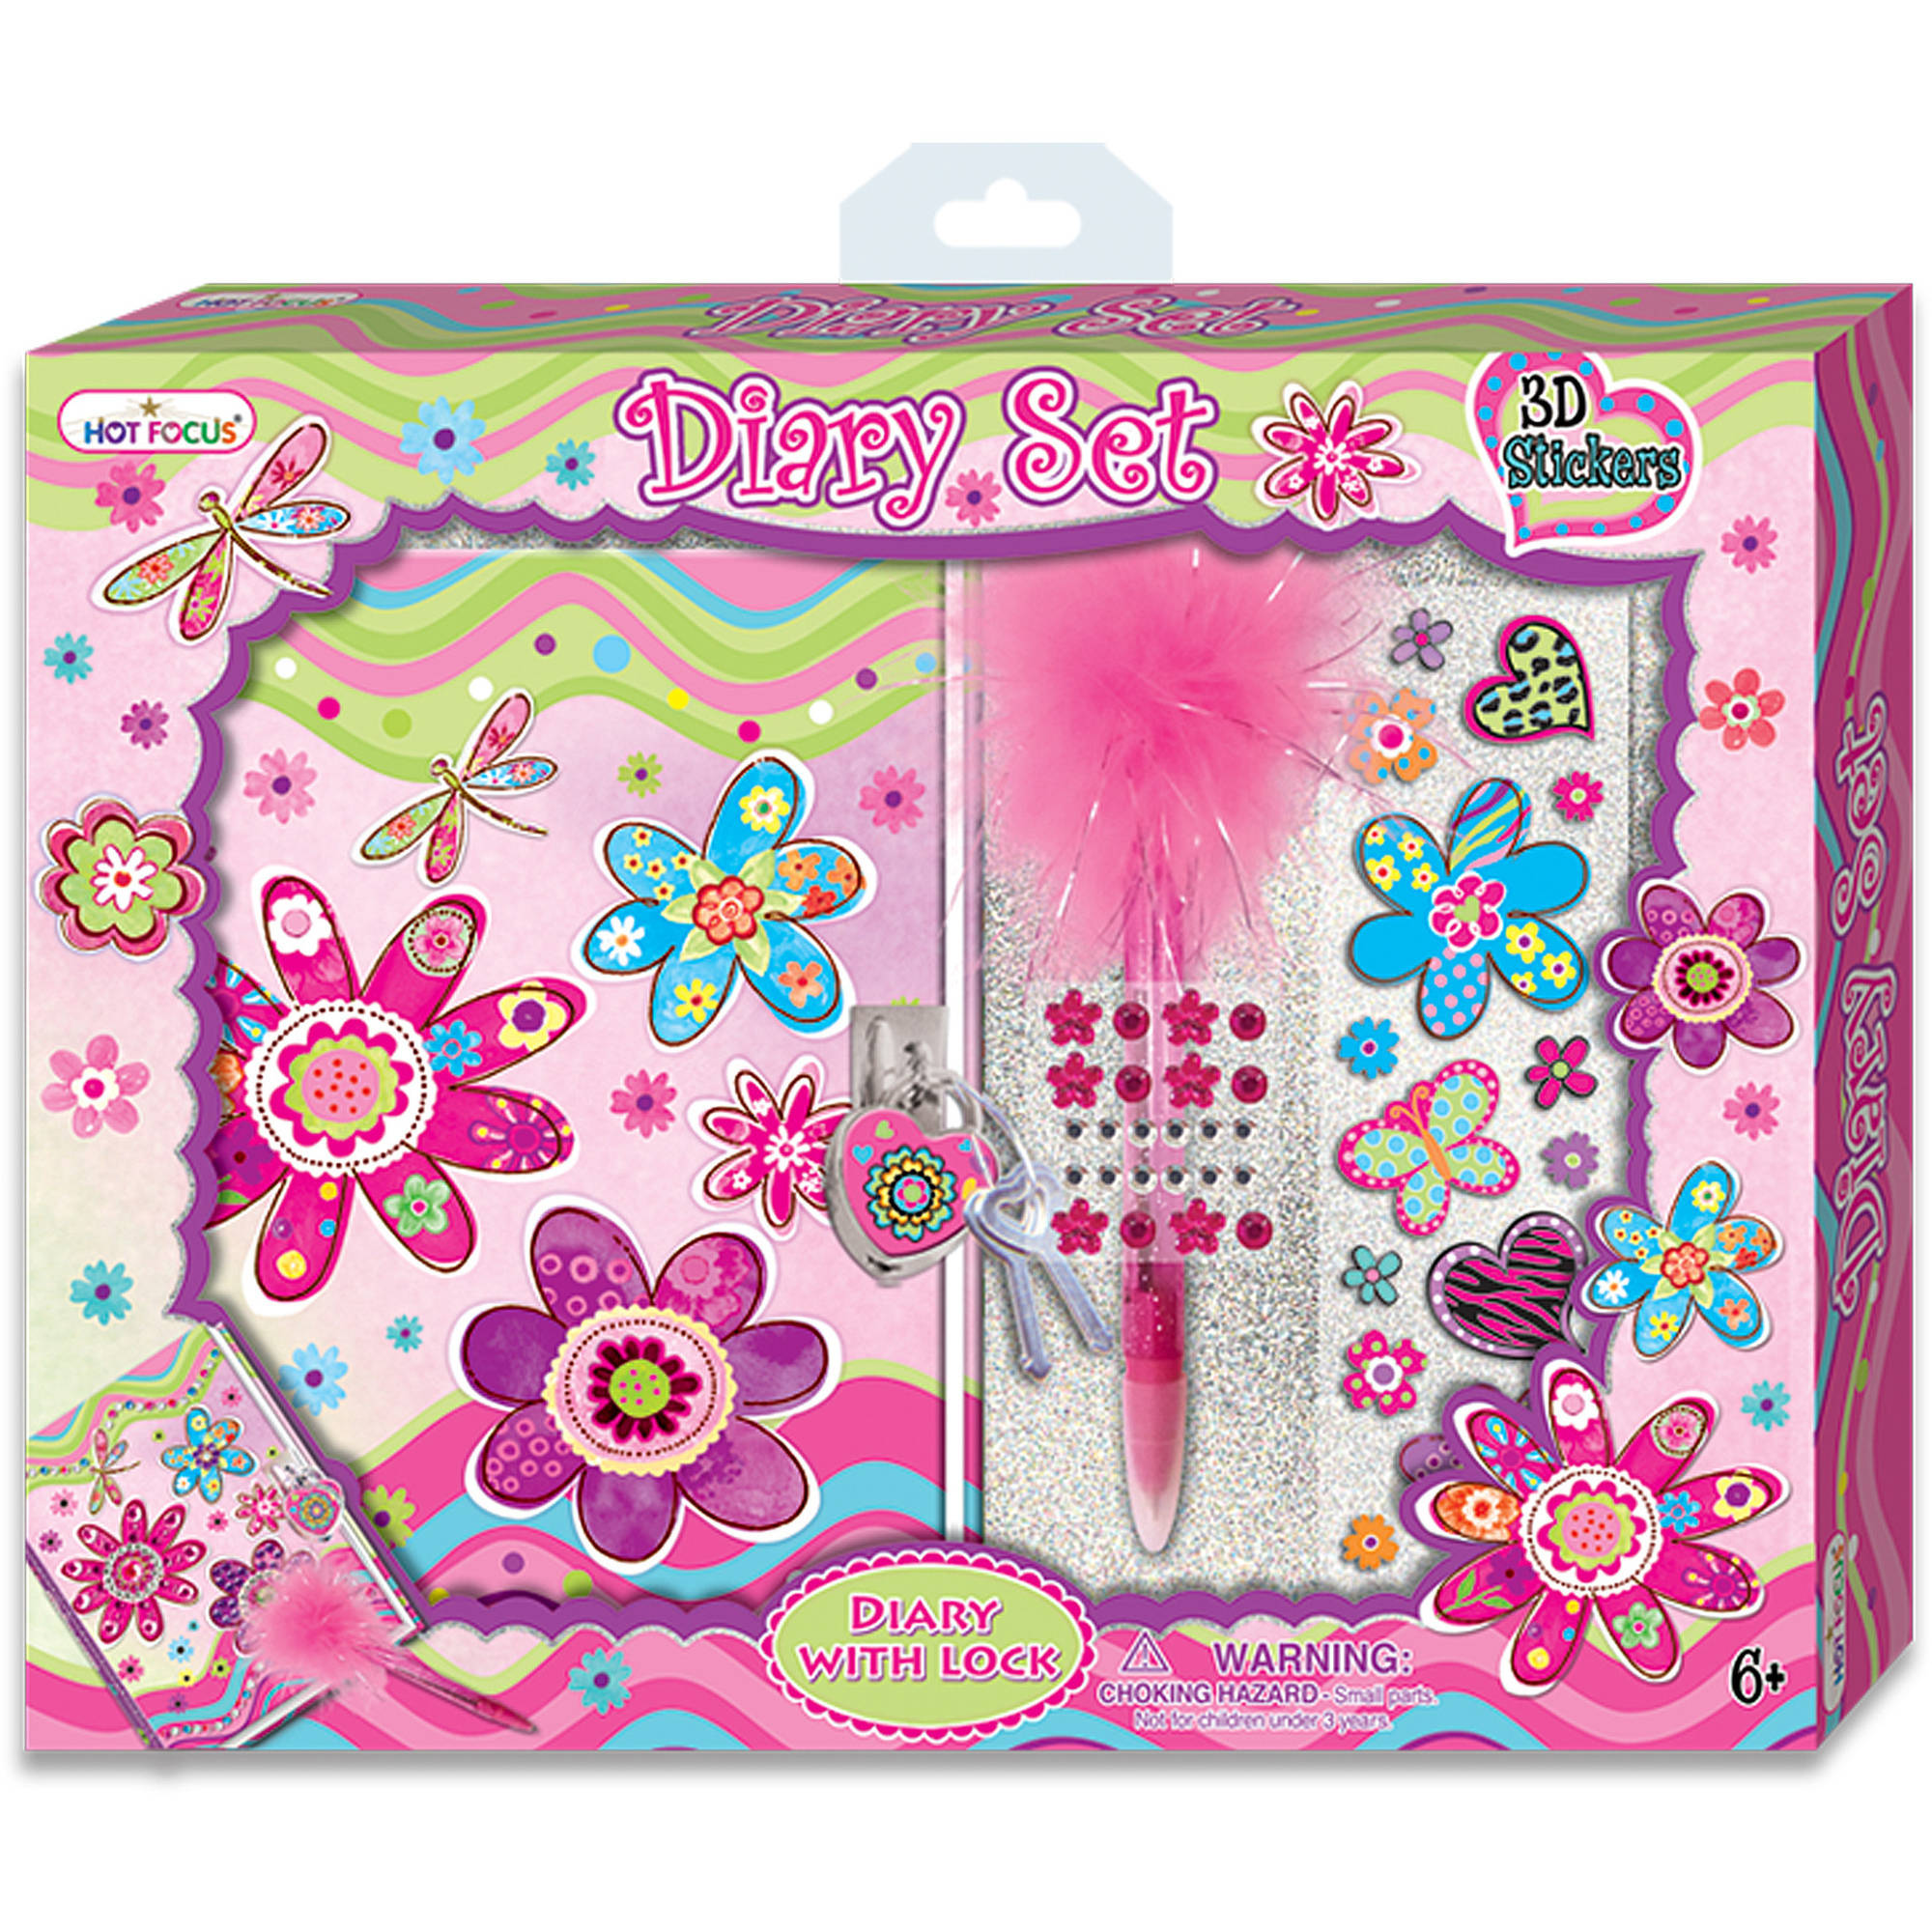 Hot Focus Diary Set with 3D Stickers, Flower Meadow